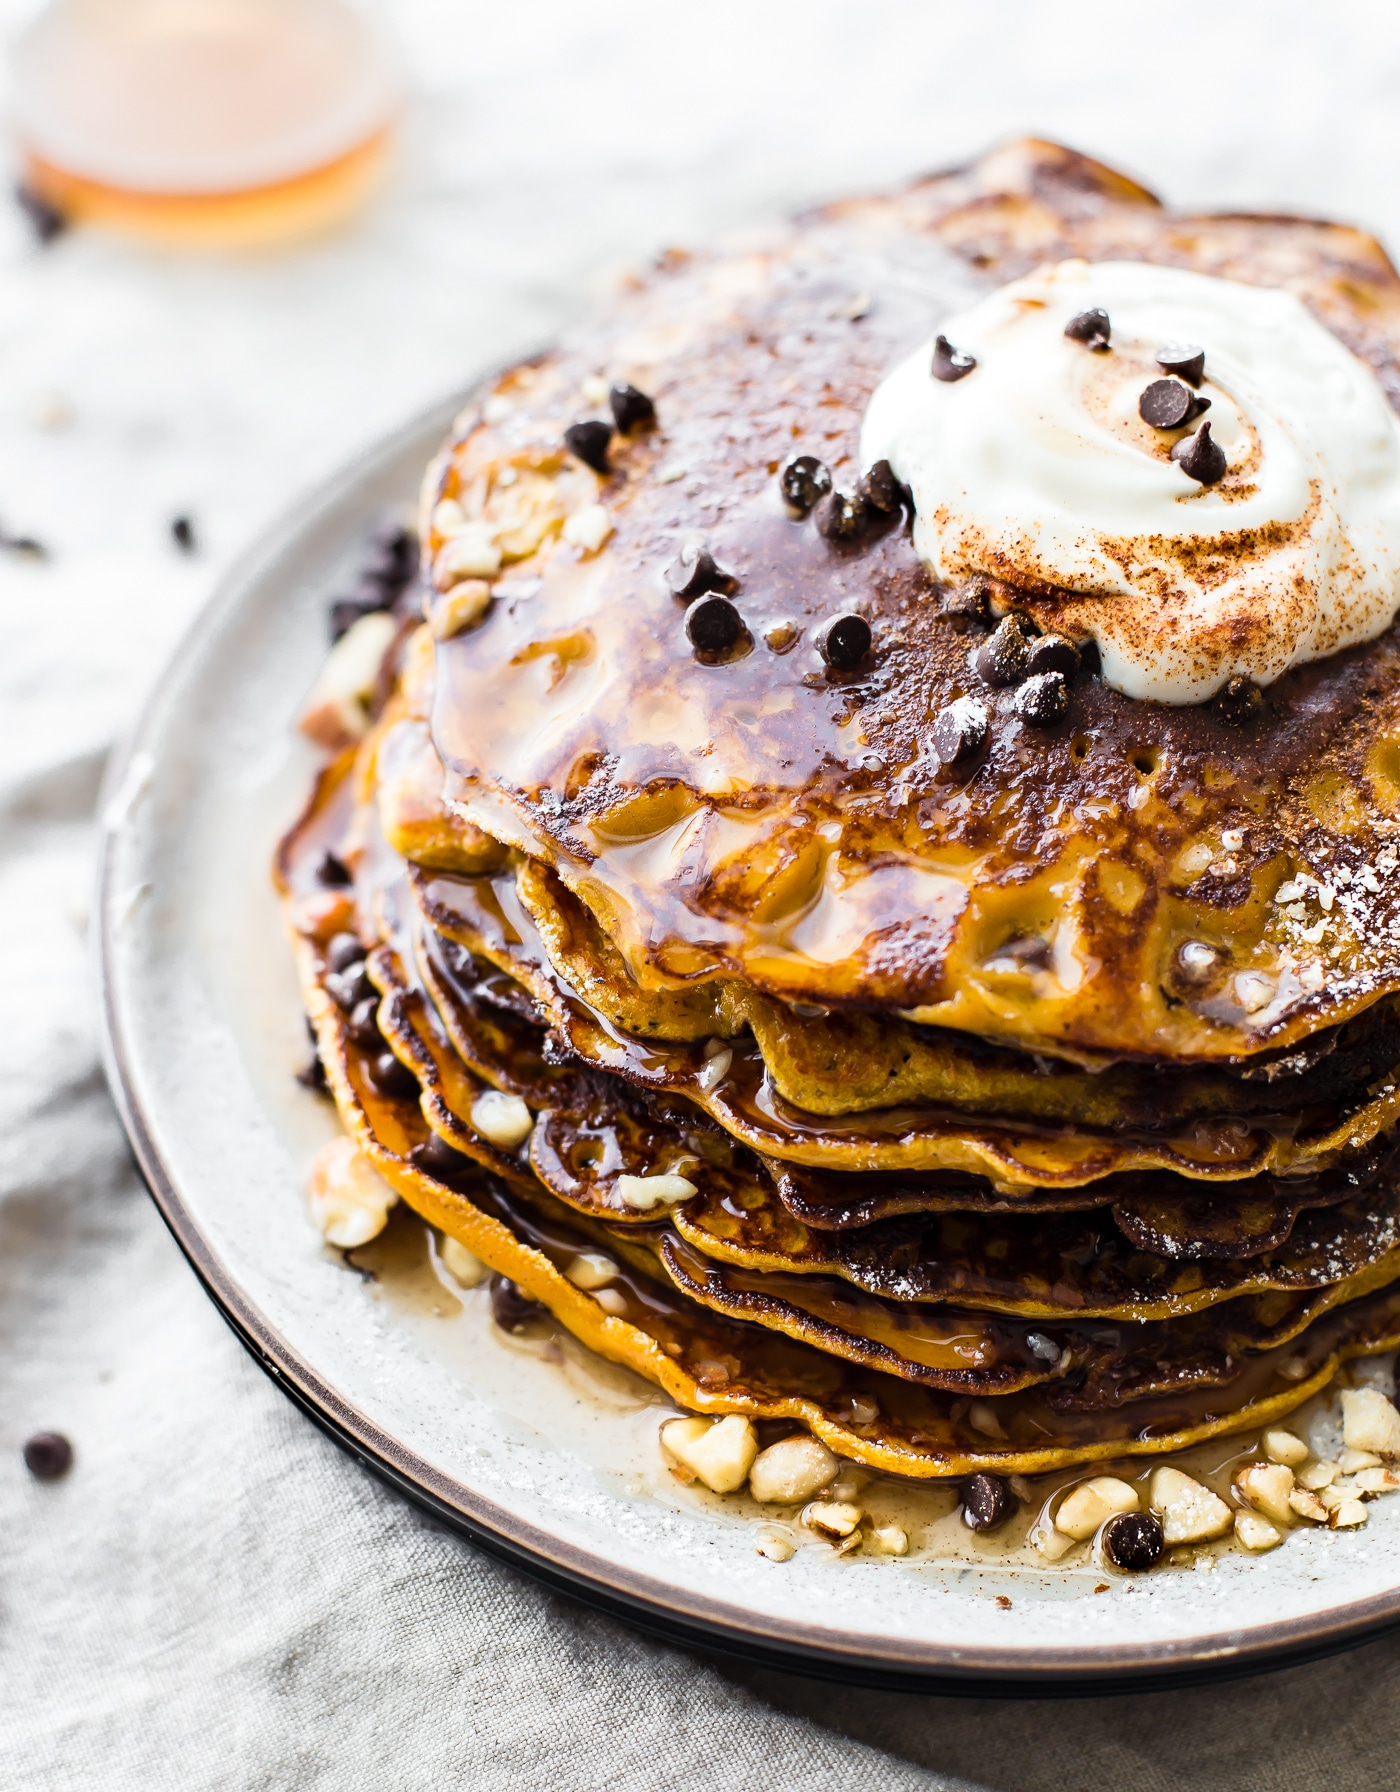 "Flourless Carrot Cake Yogurt Pancakes recipe that's perfect for breakfast or brunch. These Flourless Carrot ""Cake"" Yogurt Pancakes are too good to be true! Made with siggi's vanilla yogurt, making them lower in sugar, gluten free, and protein packed! An easy blender recipe."